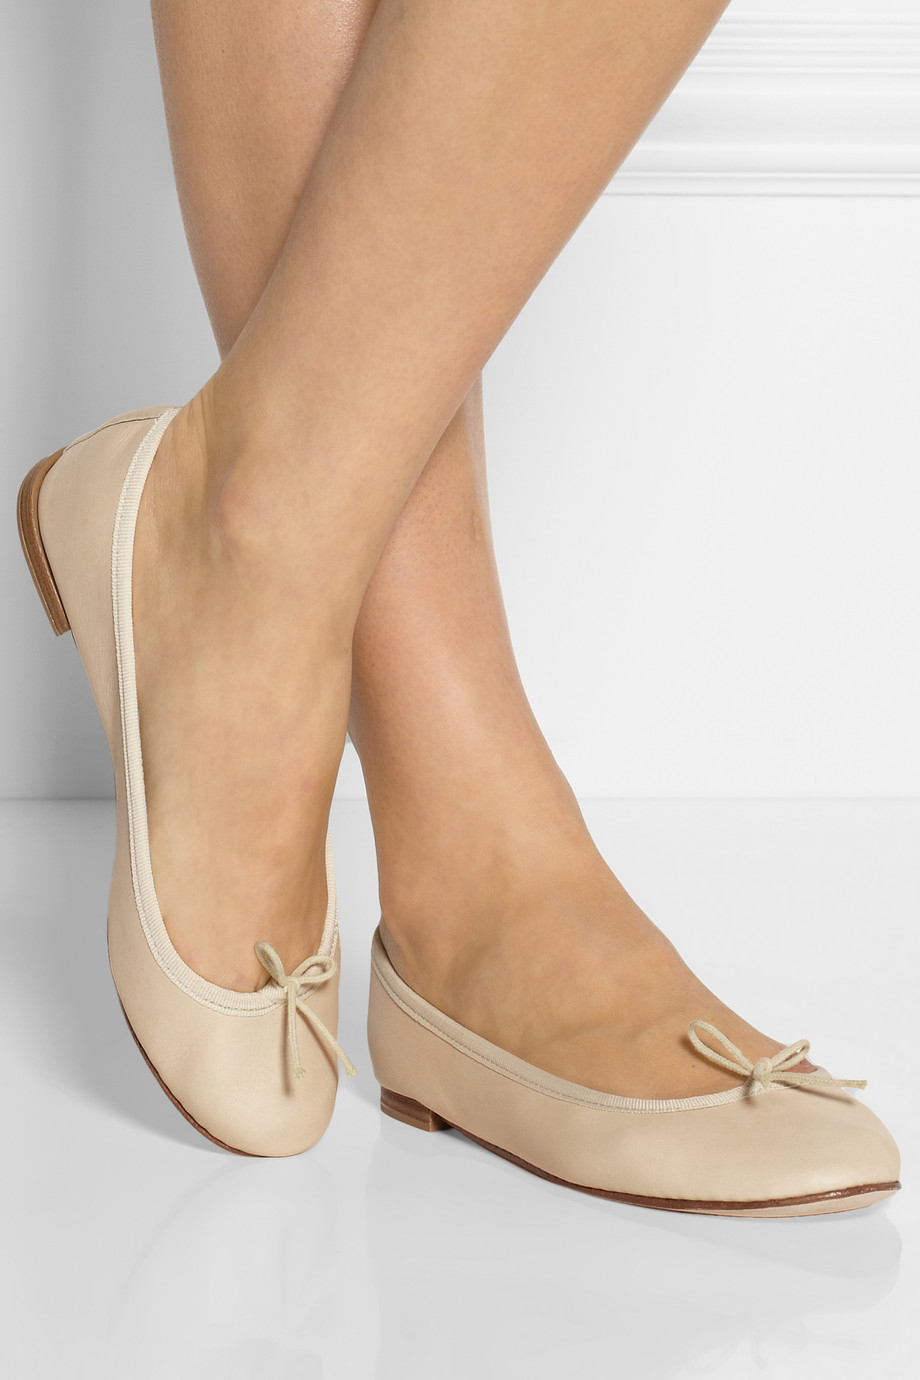 83fdb1bf2b3 Lyst - Repetto The Cendrillon Leather Ballet Flats in Natural